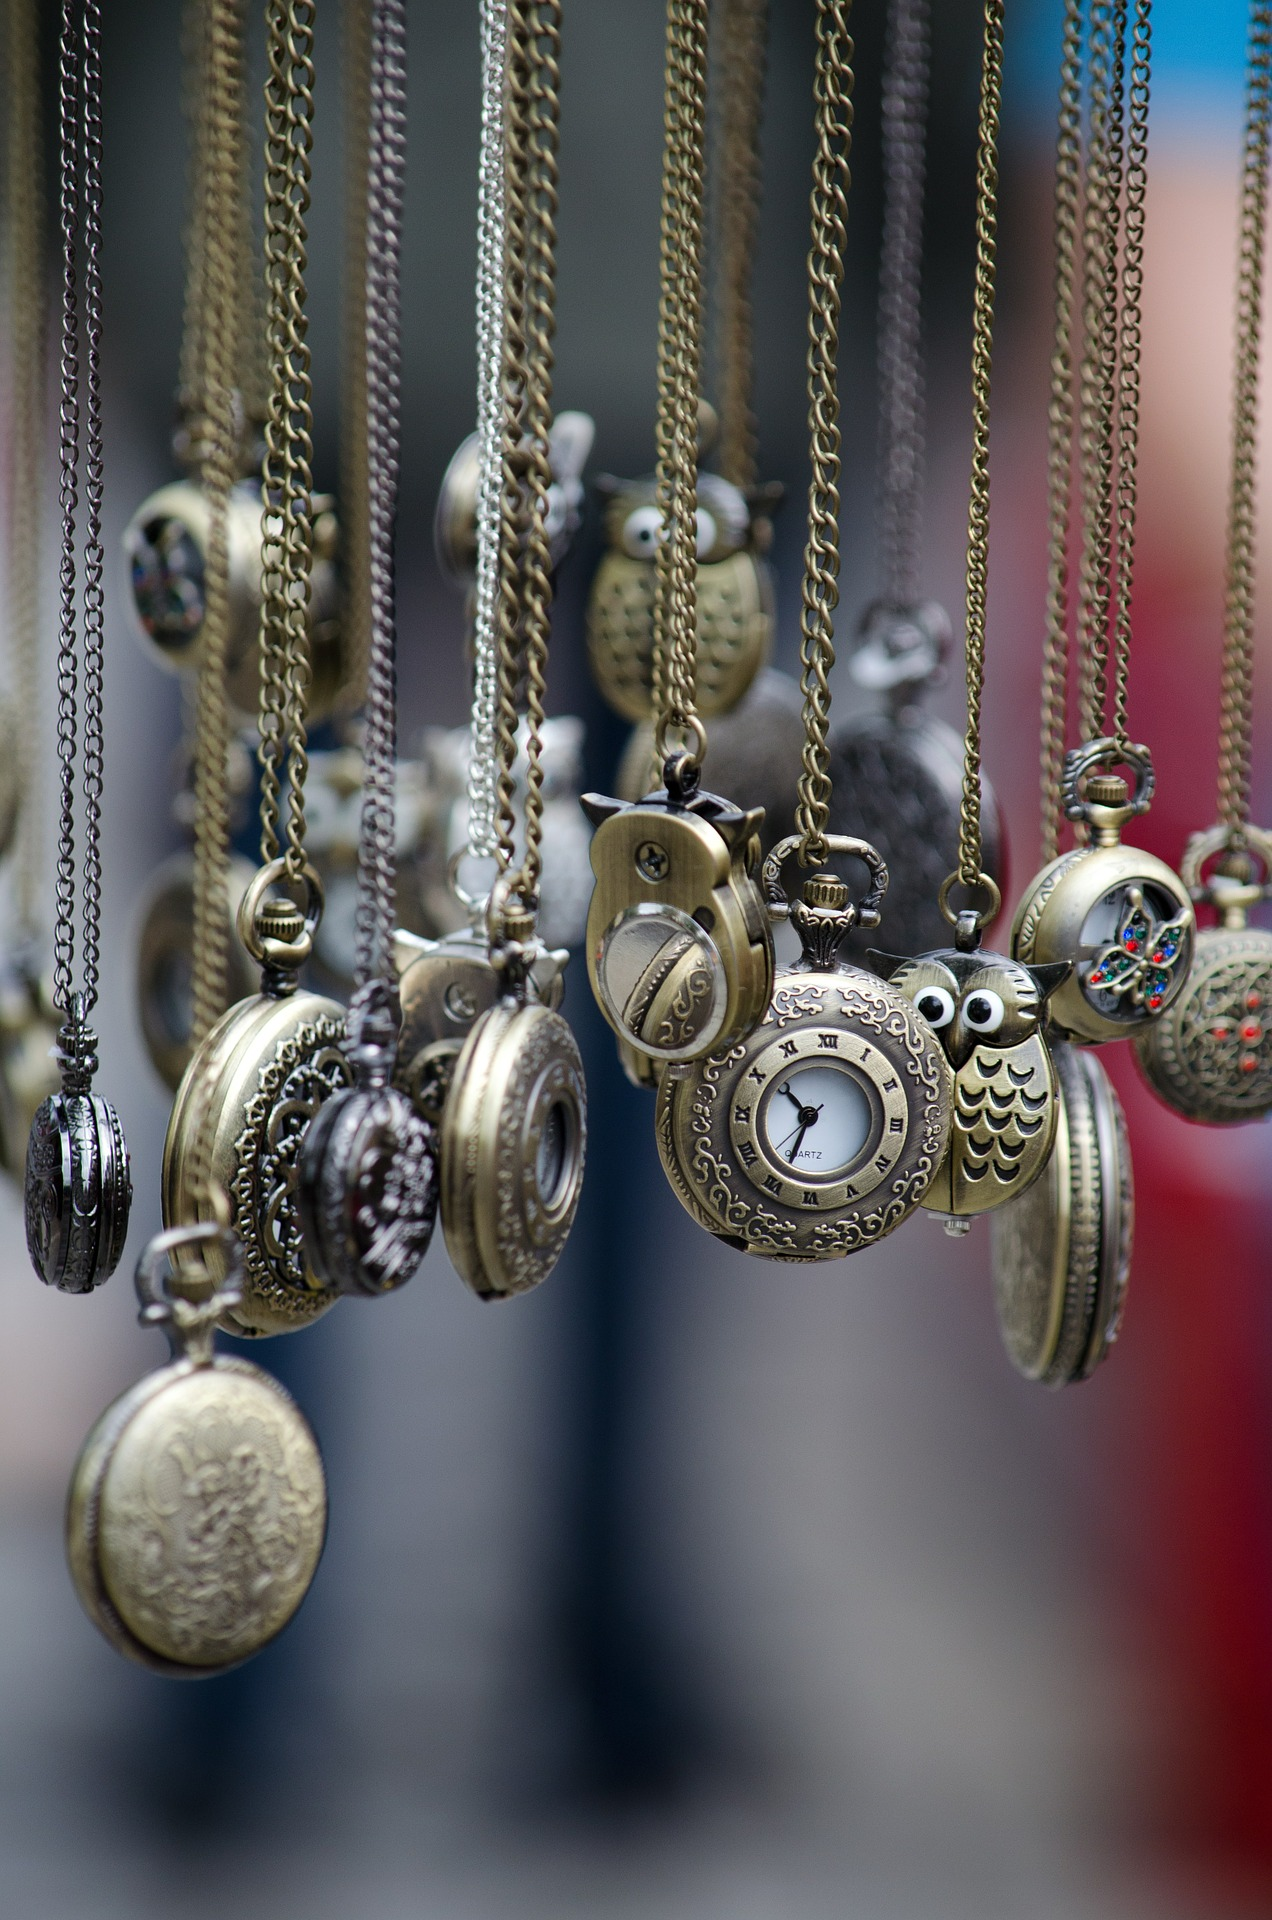 pocket-watches-436567_1920